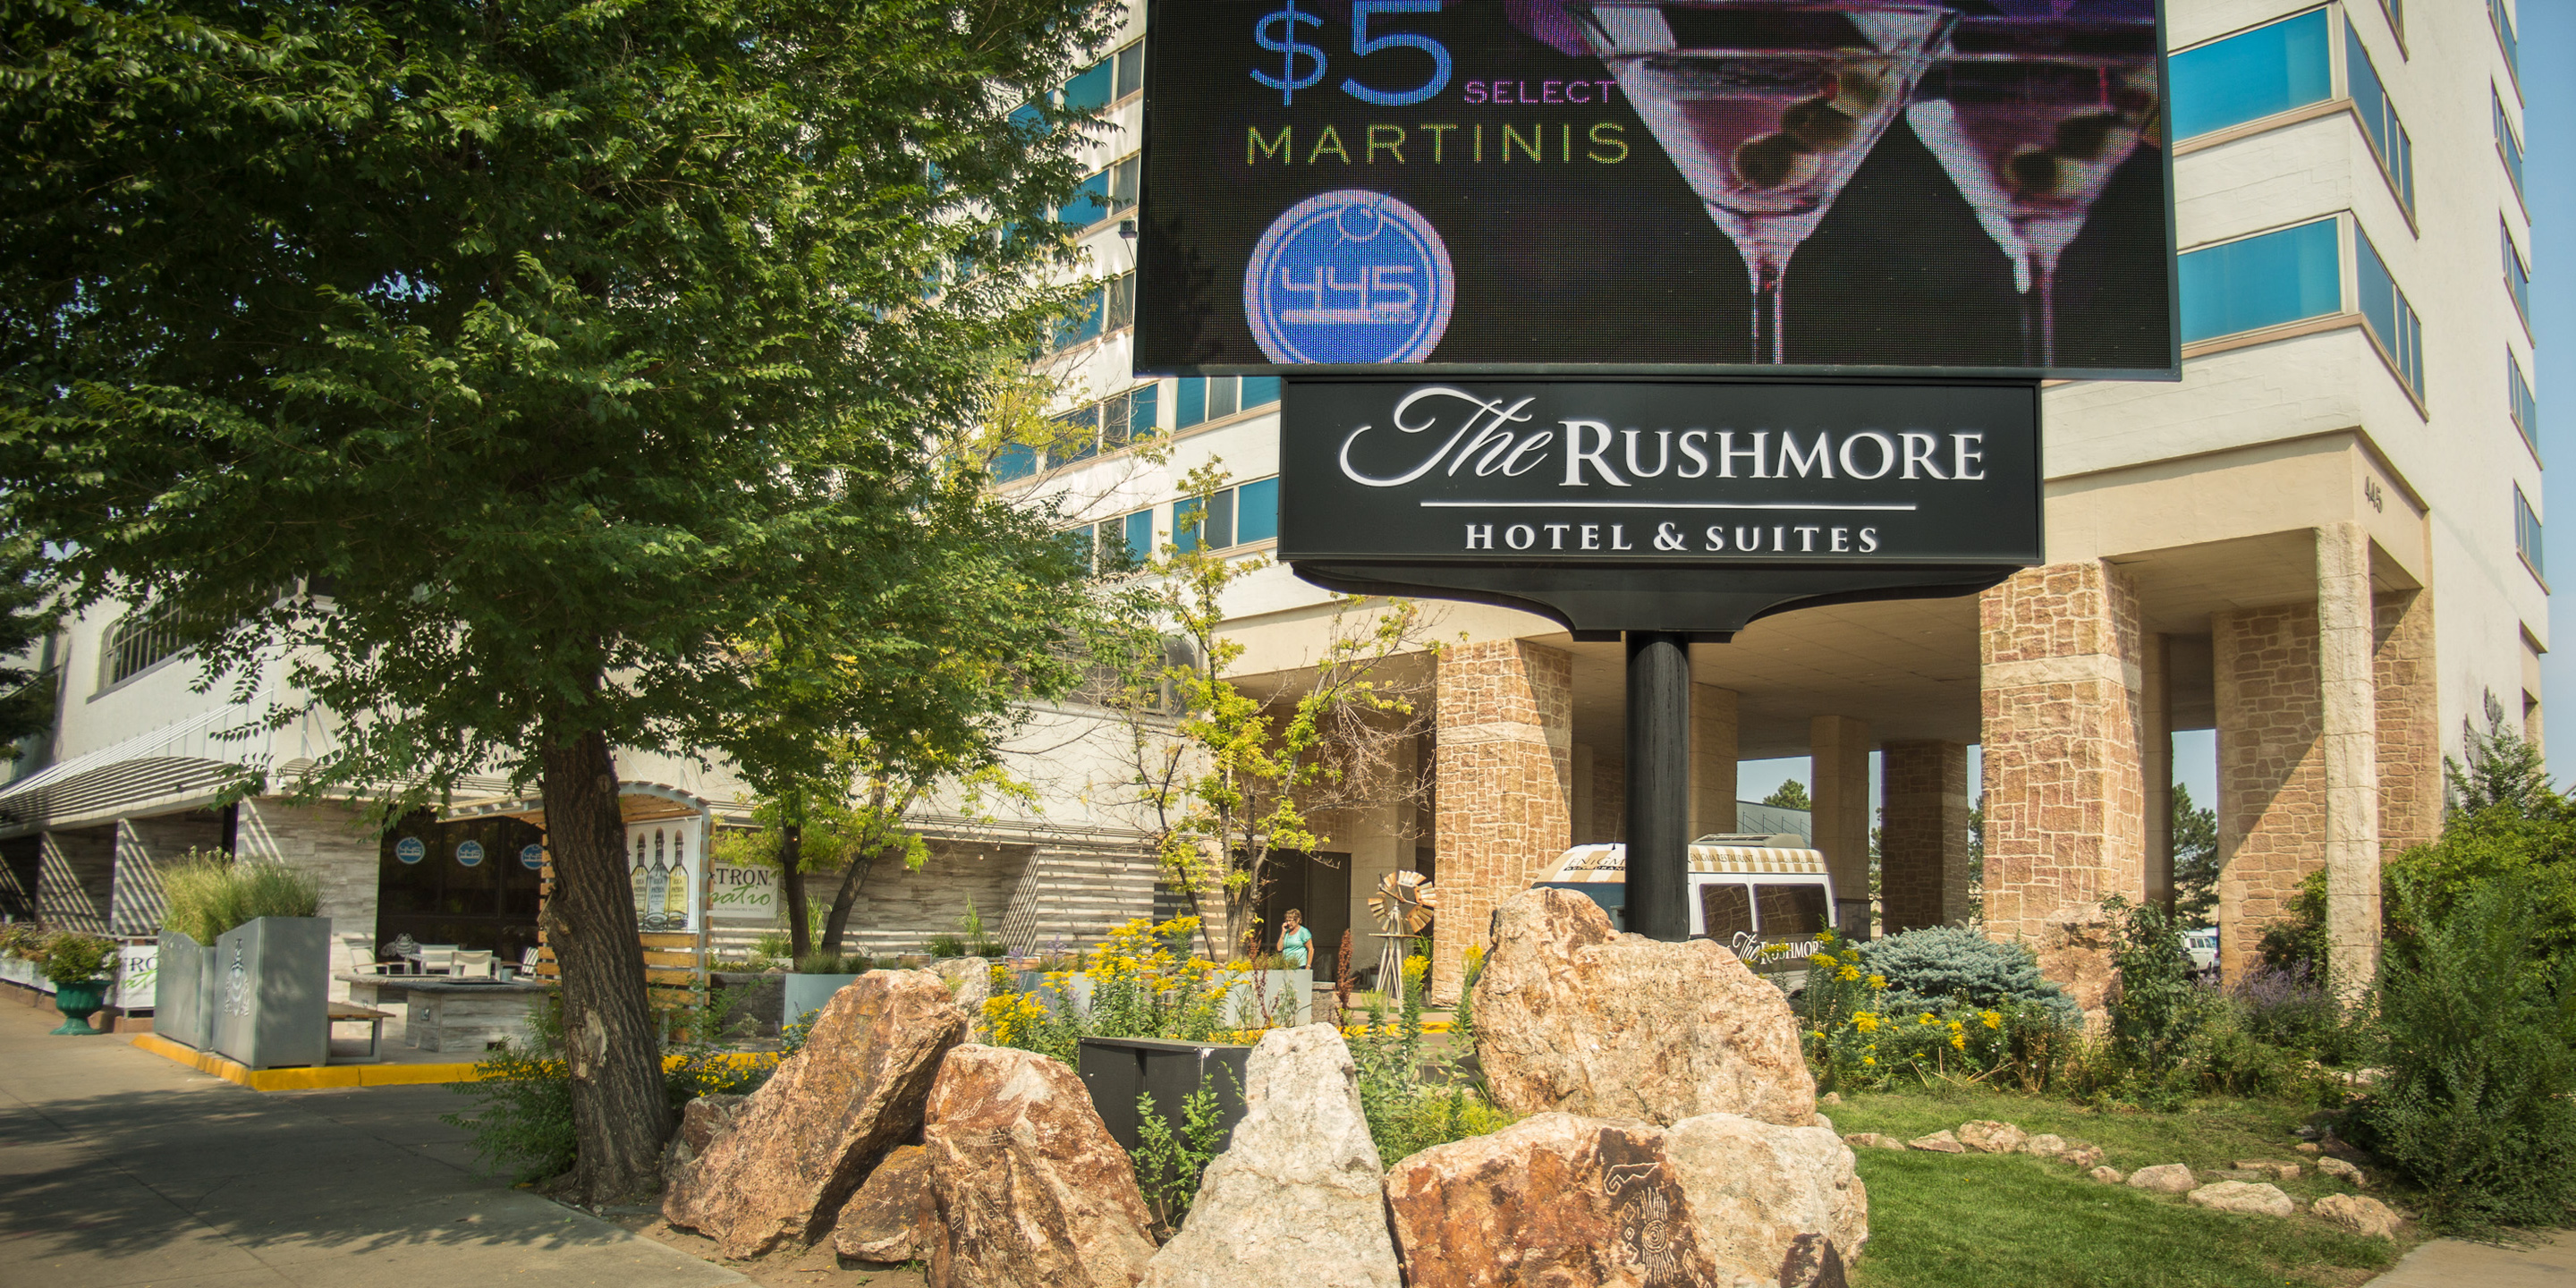 The rushmore hotel rapid city south dakota for Independent boutique hotels